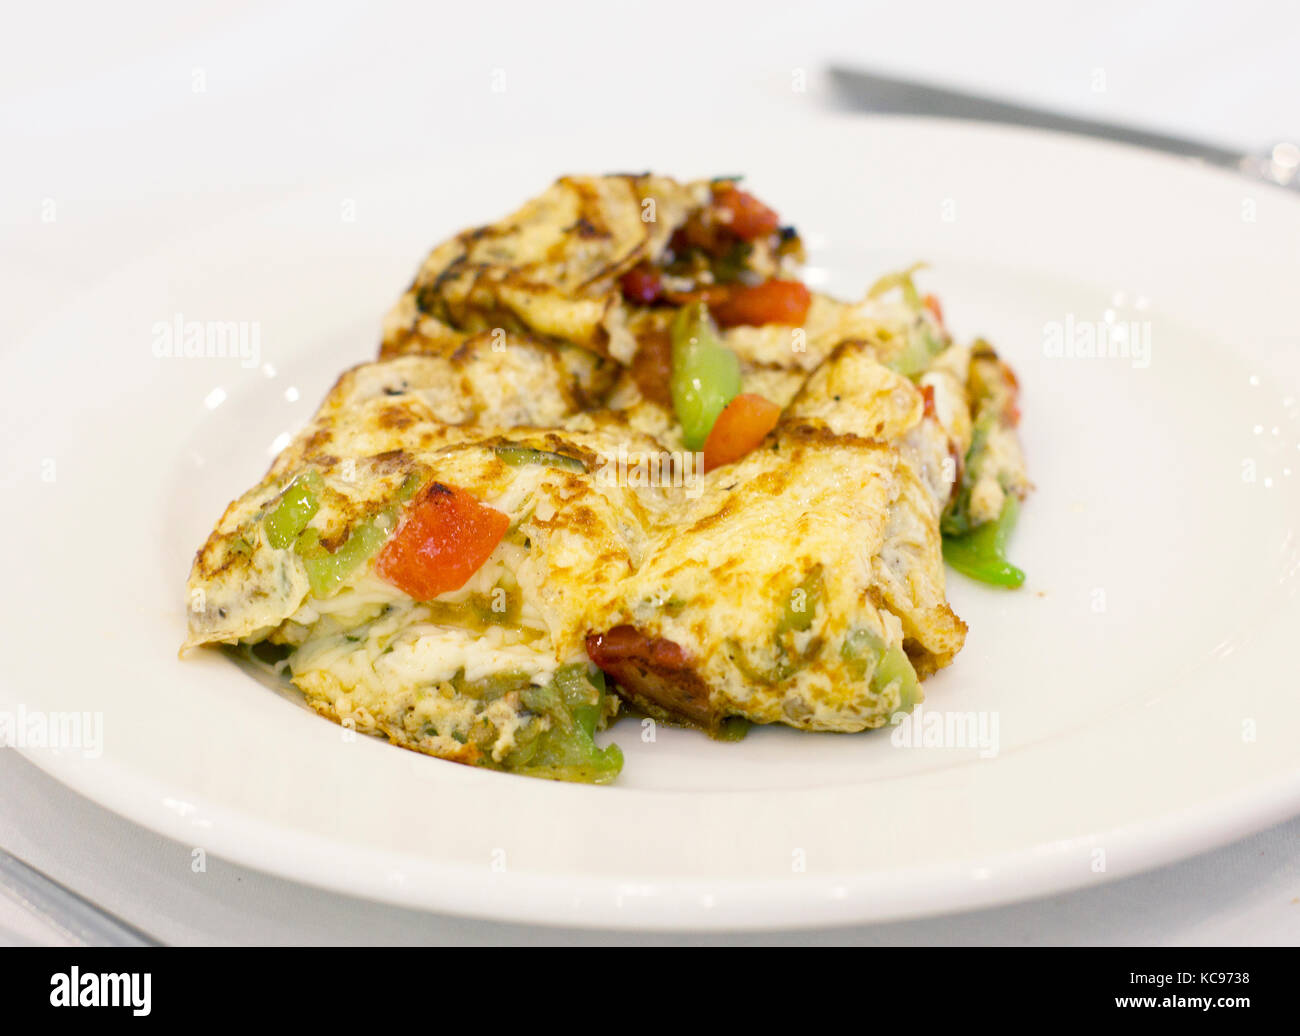 Omelet with vegetables on the white porcelain plate - Stock Image